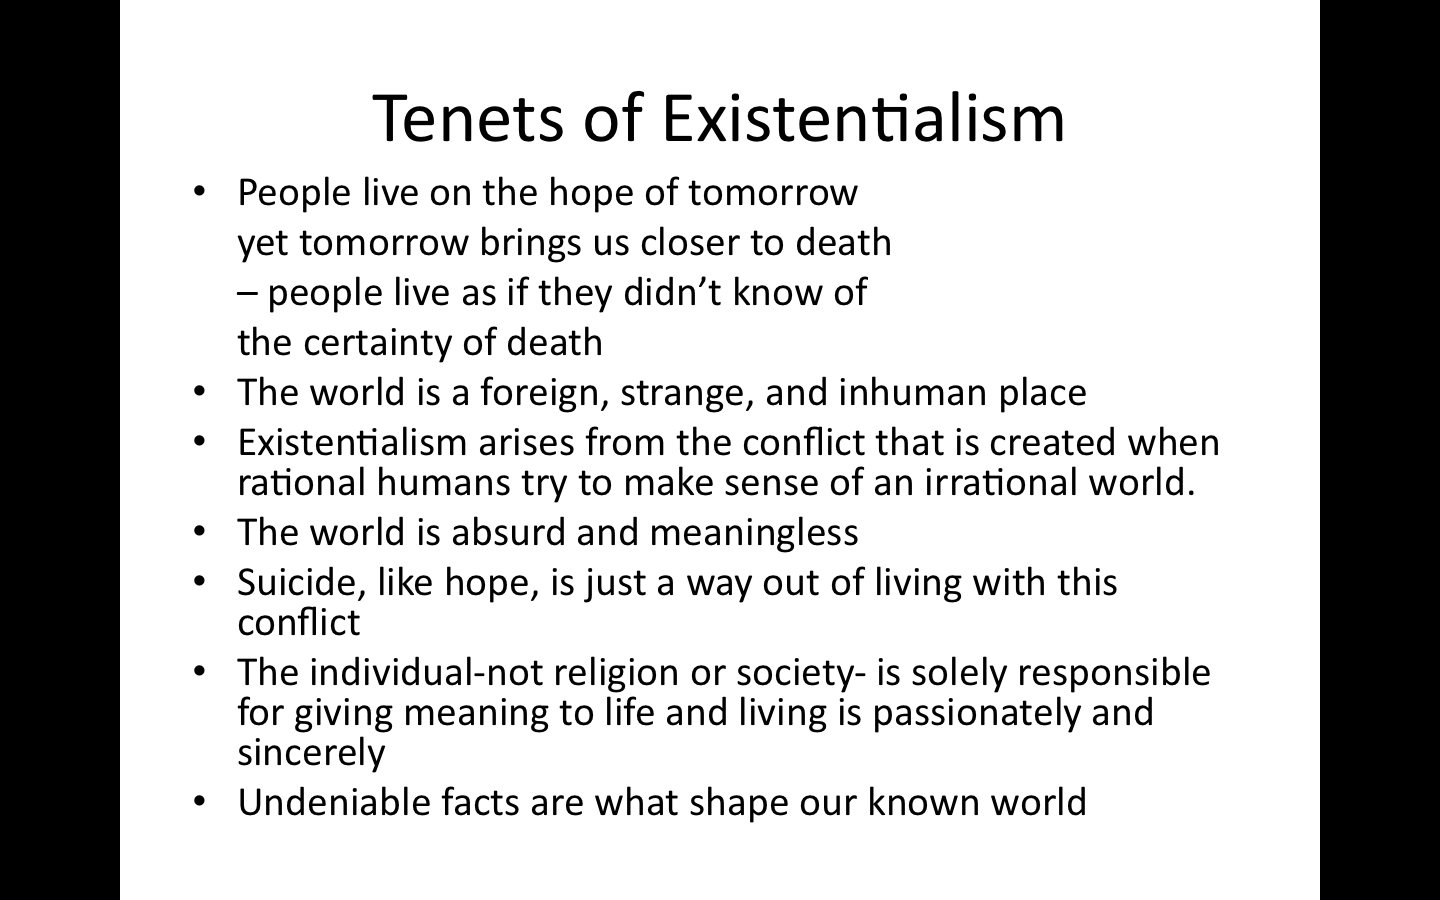 004 Essays In Existentialism Essay Example Tenets Of Outstanding Pdf Sartre Full